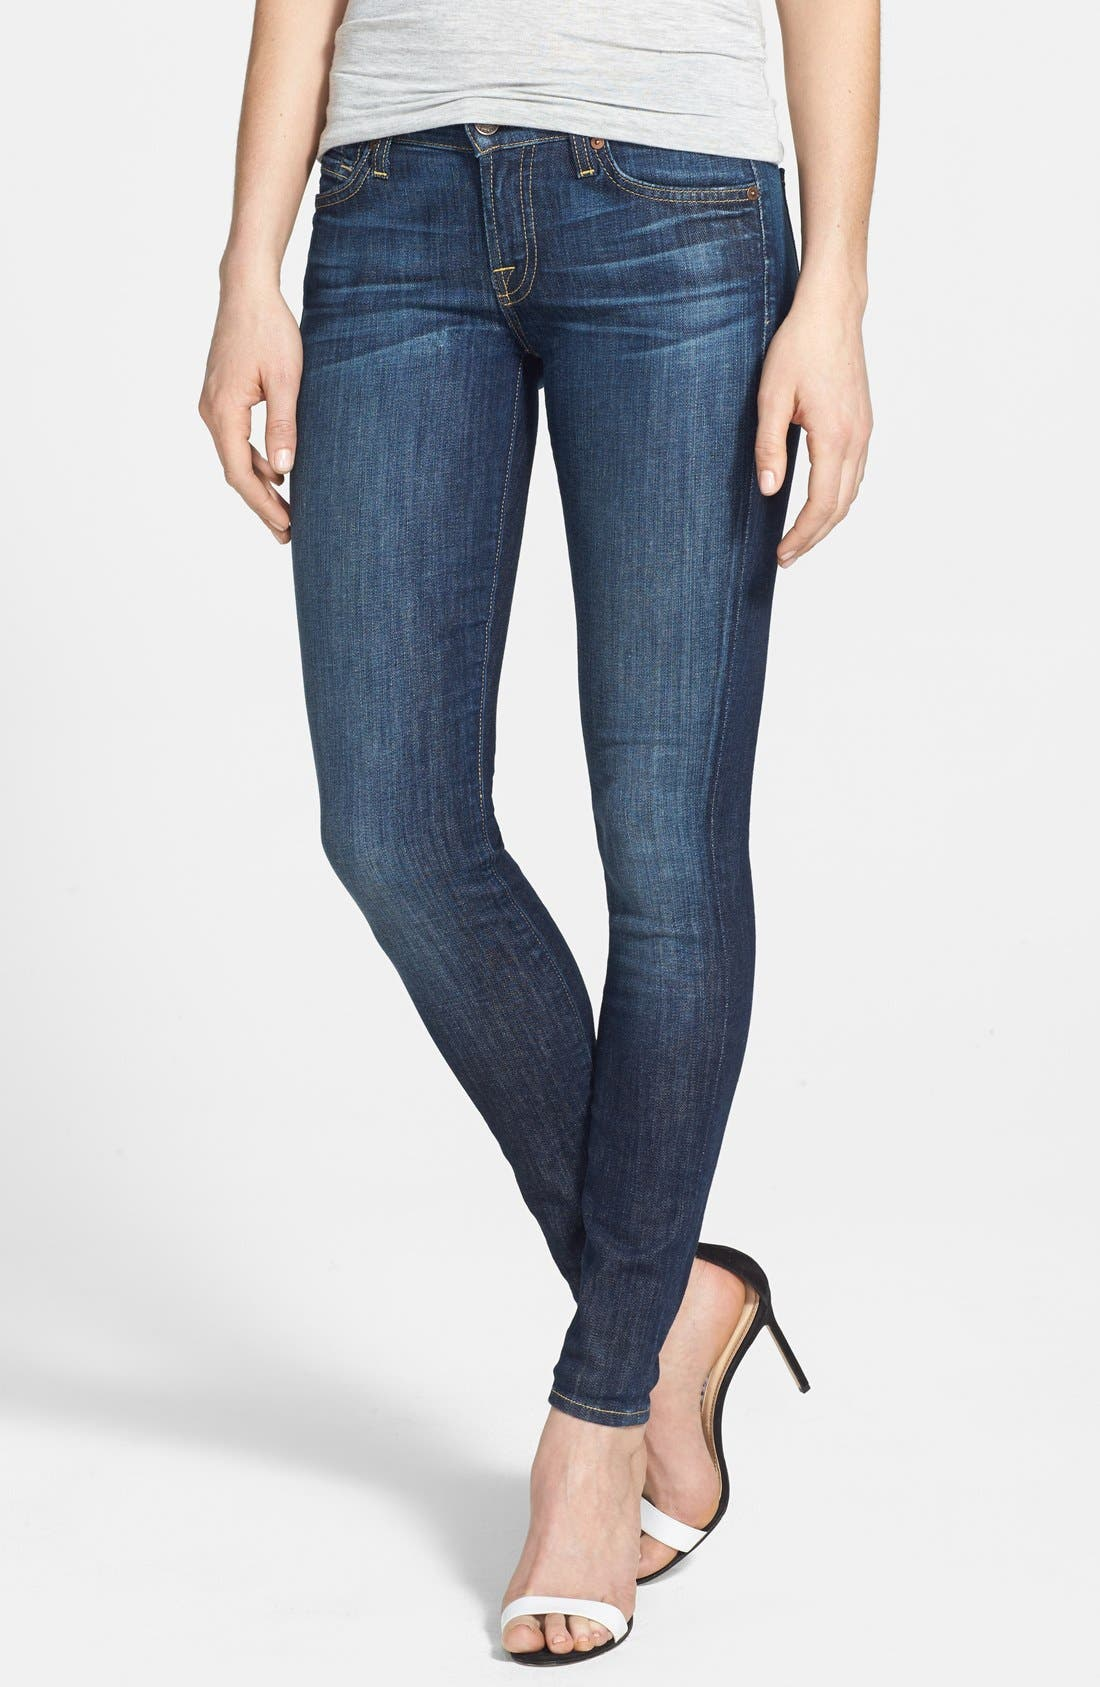 'The Skinny' Mid Rise Skinny Jeans,                             Main thumbnail 1, color,                             400